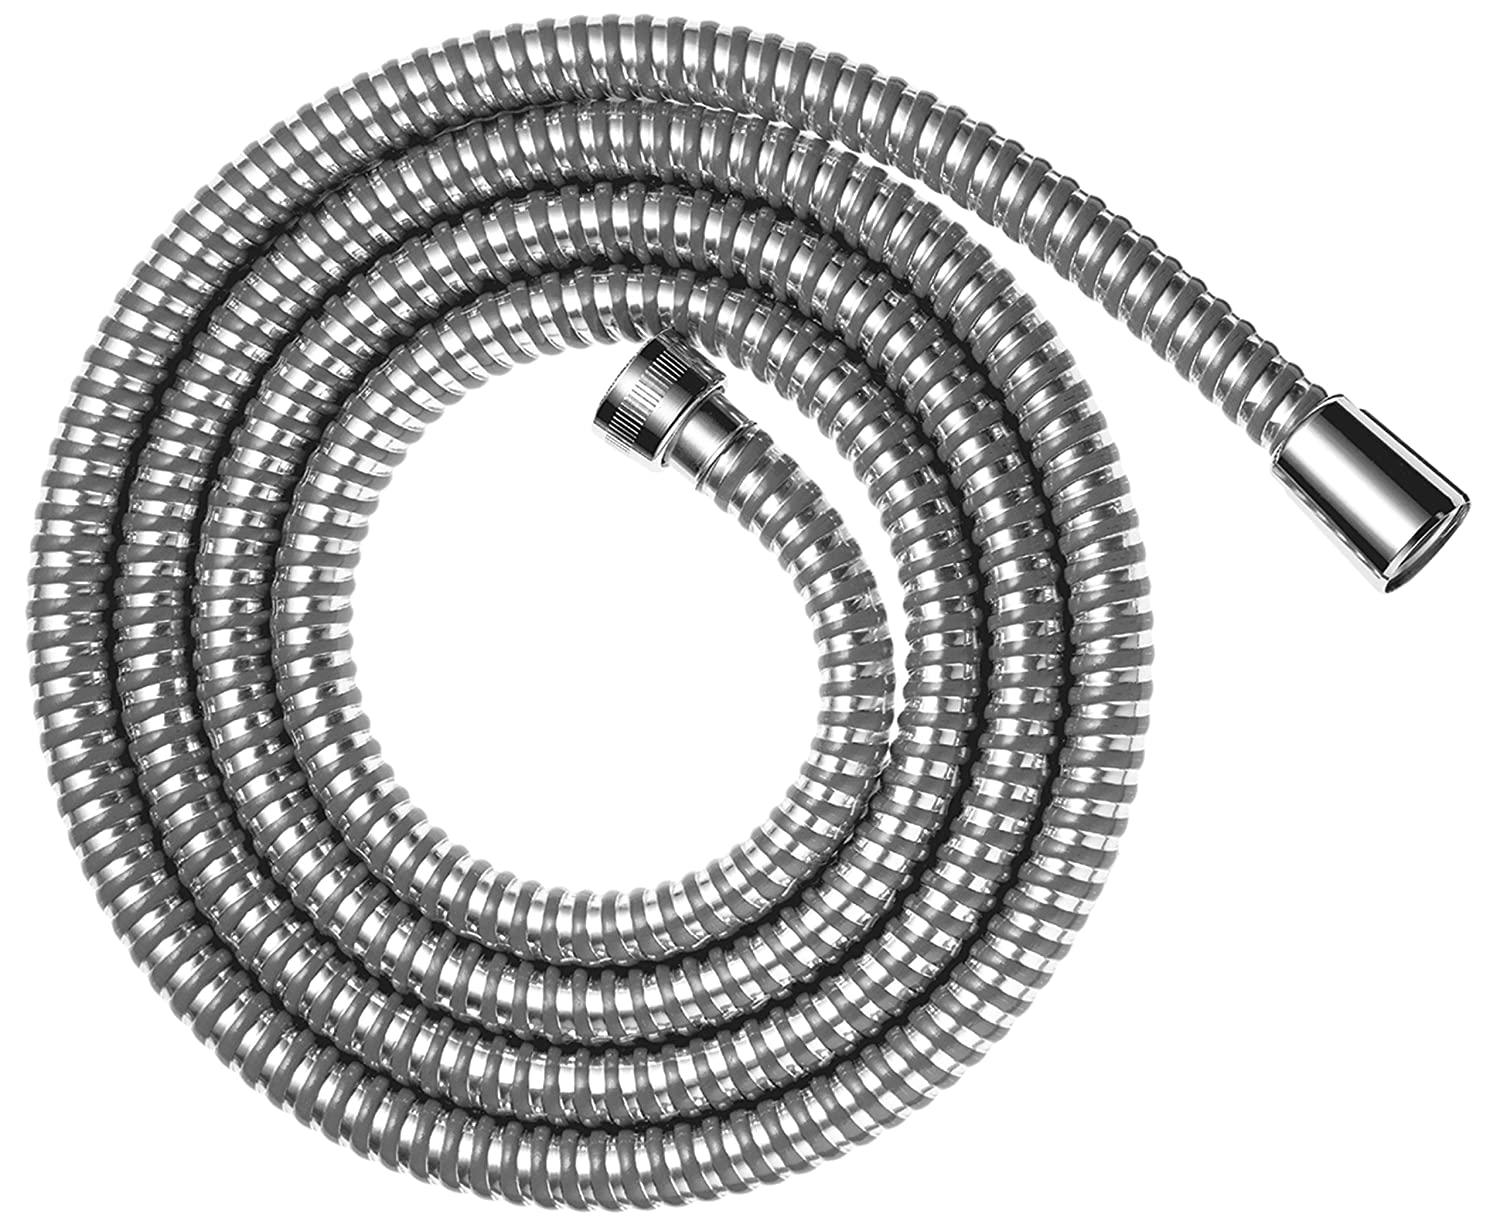 Hansgrohe Metaflex Flexible Anti-Kink Shower Hose, Silver, 28263002